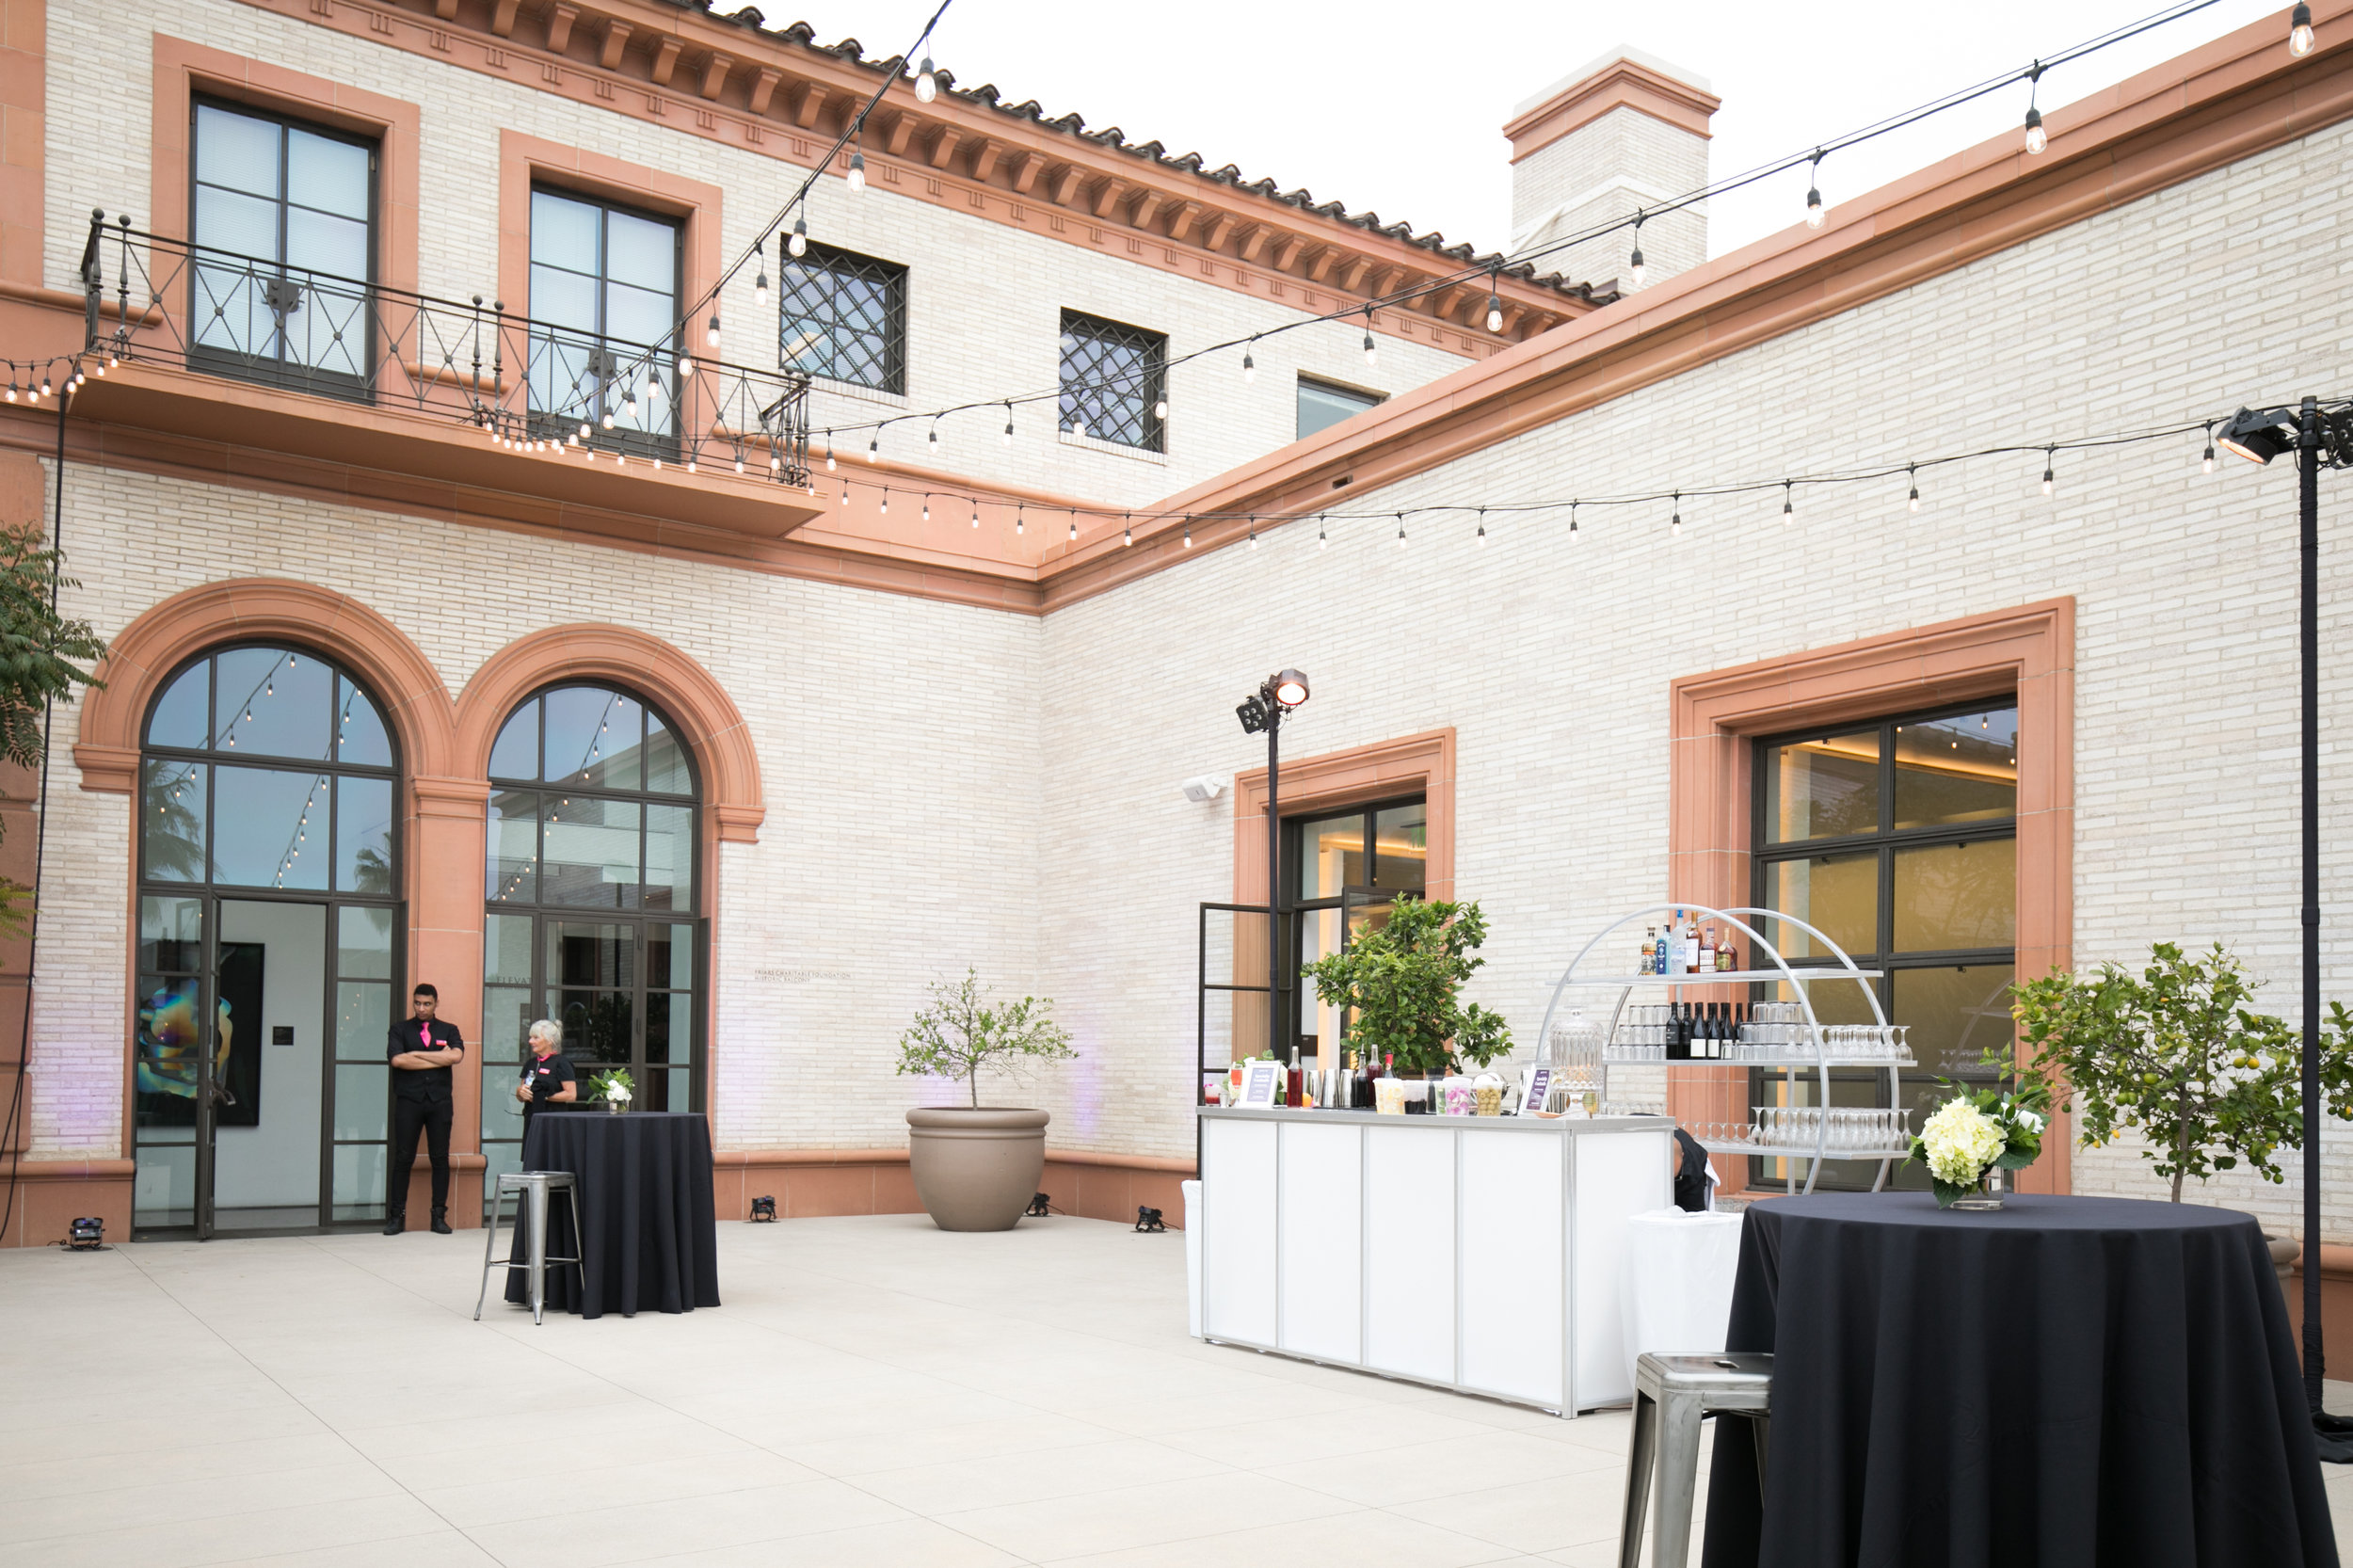 cocktail caterer, cocktail events, barlingual, los angeles, cocktail party, la, events, delta